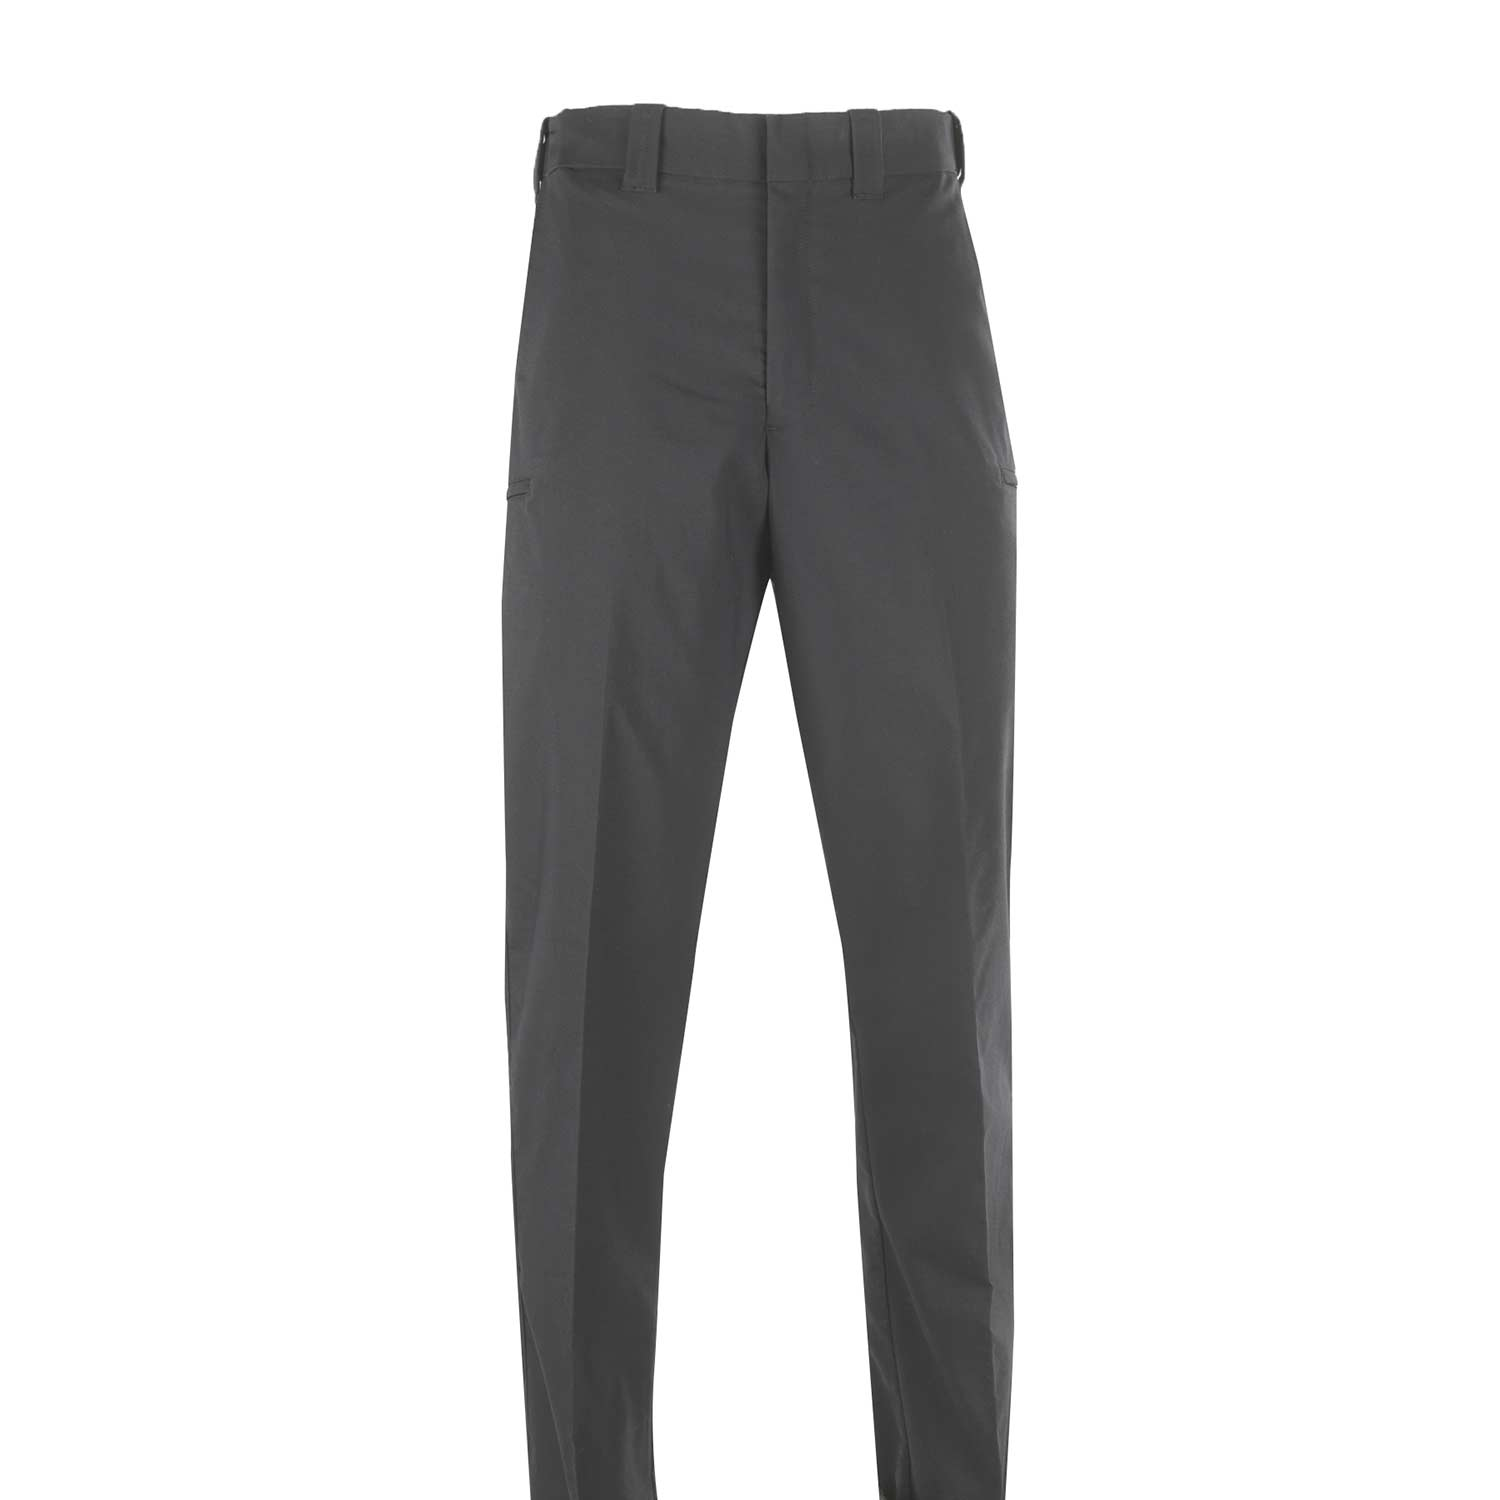 Cross Fx Elite Class A Style Uniform Pants by Flying Cross